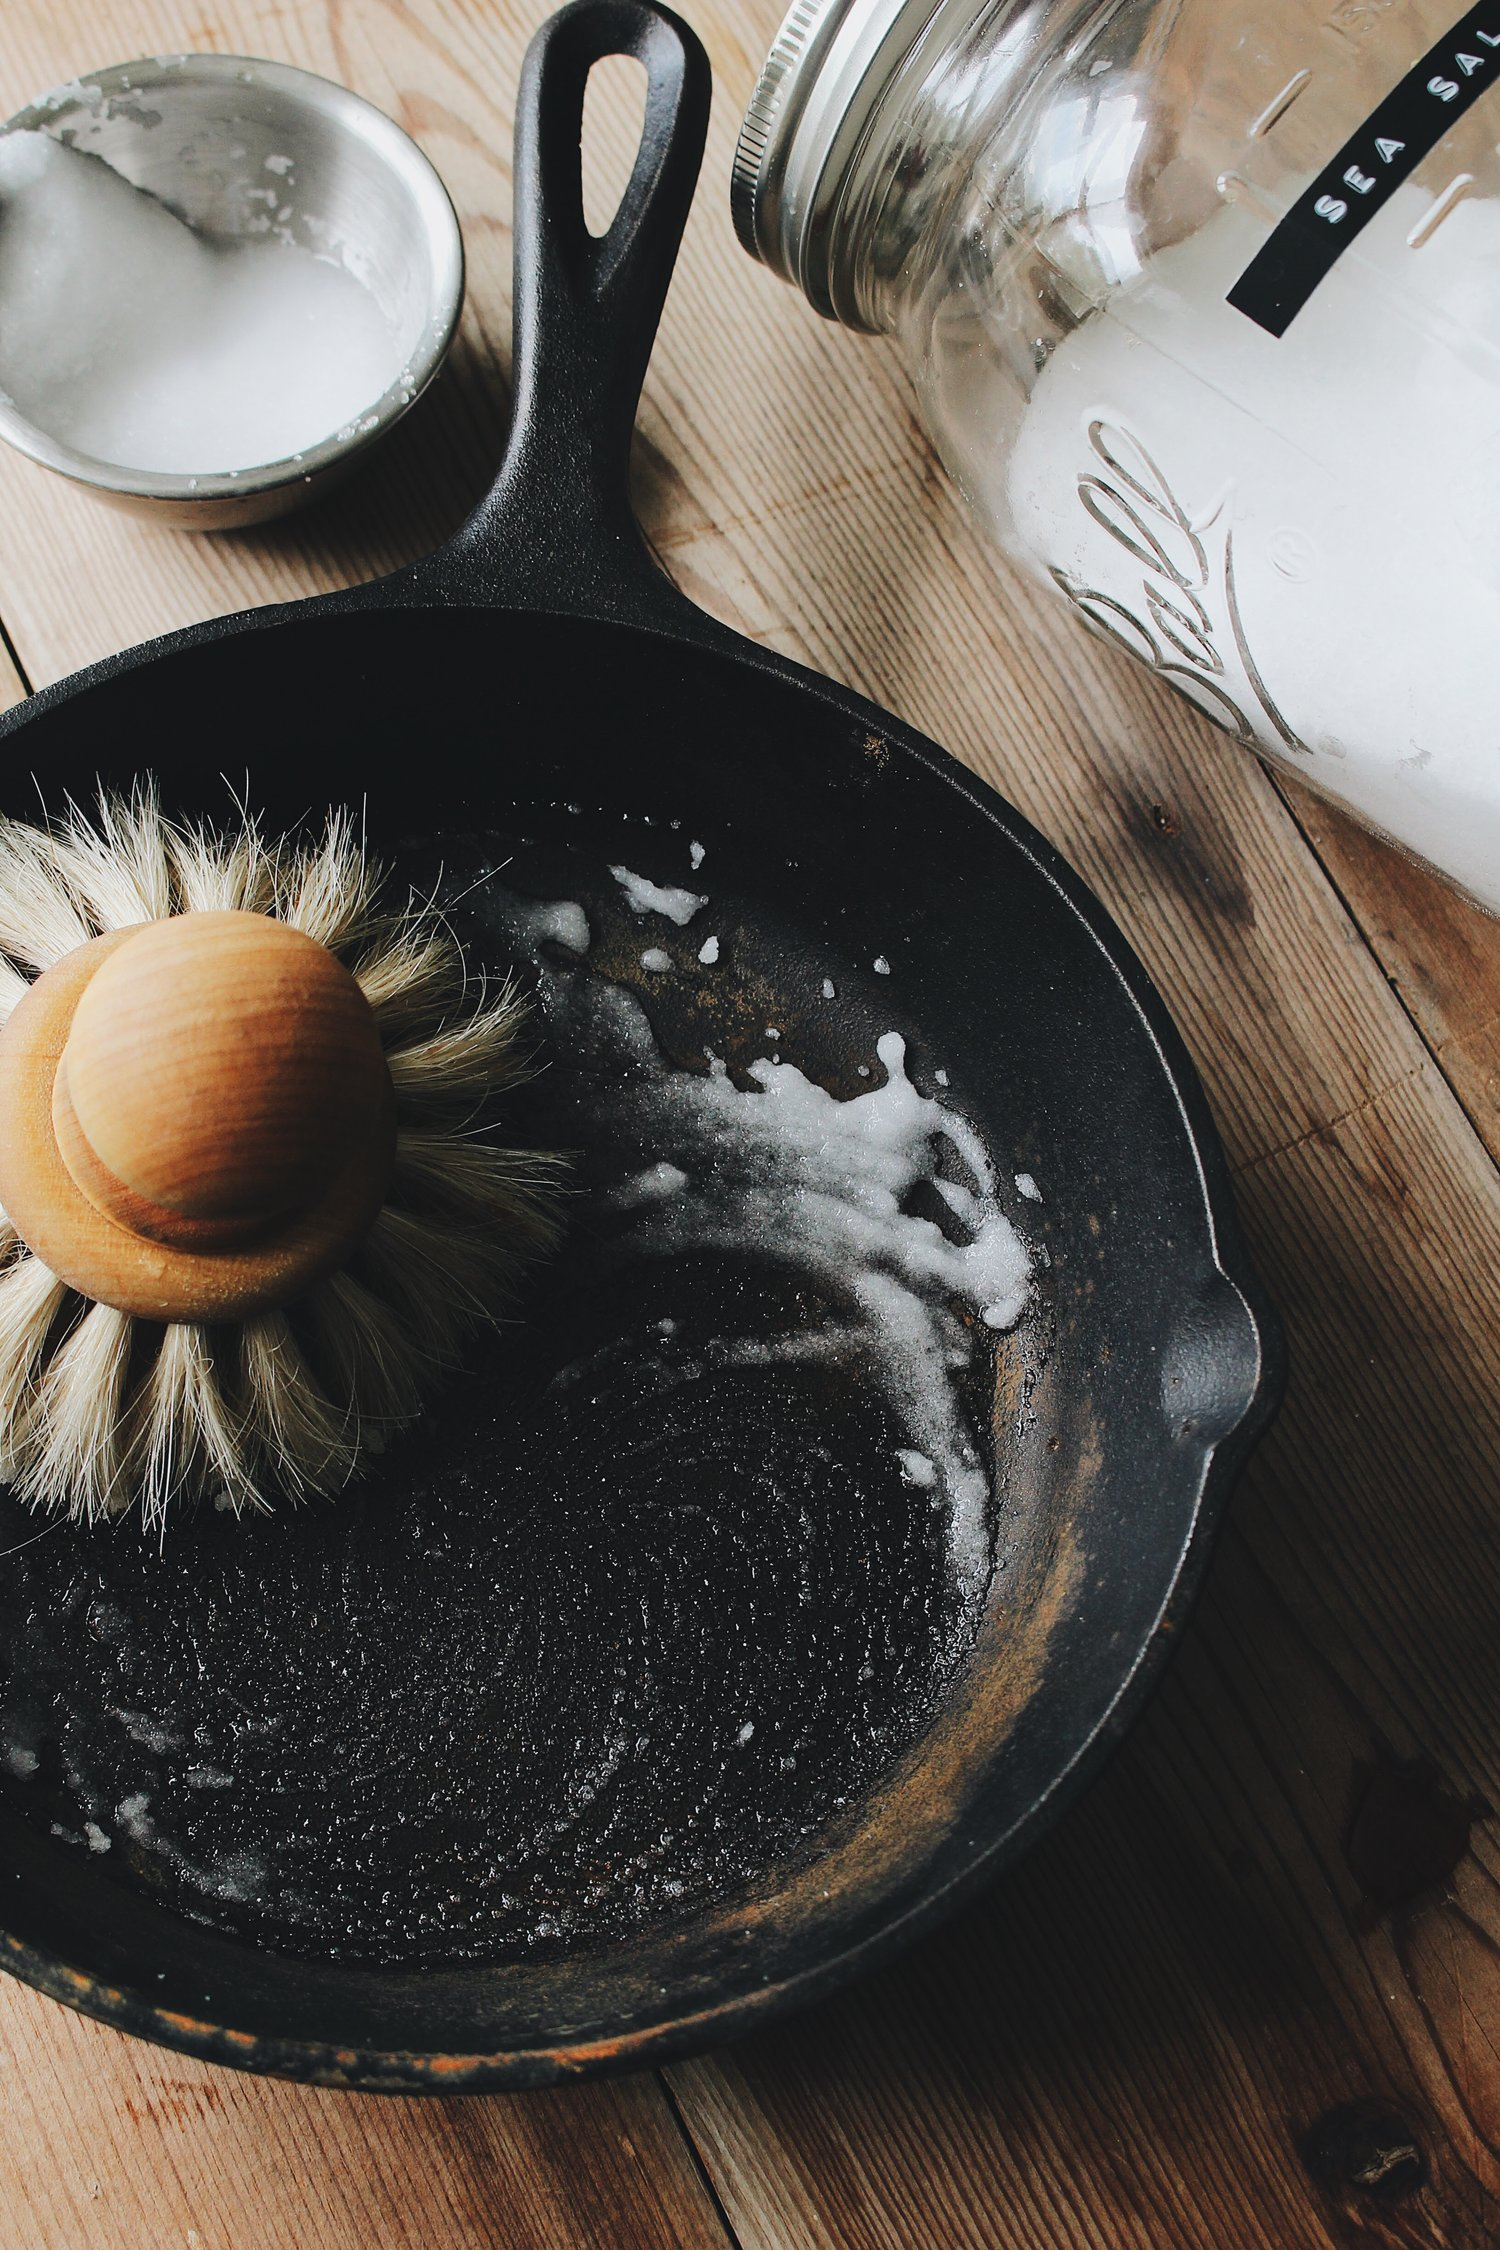 How to Care for Your Cast Iron Skillet